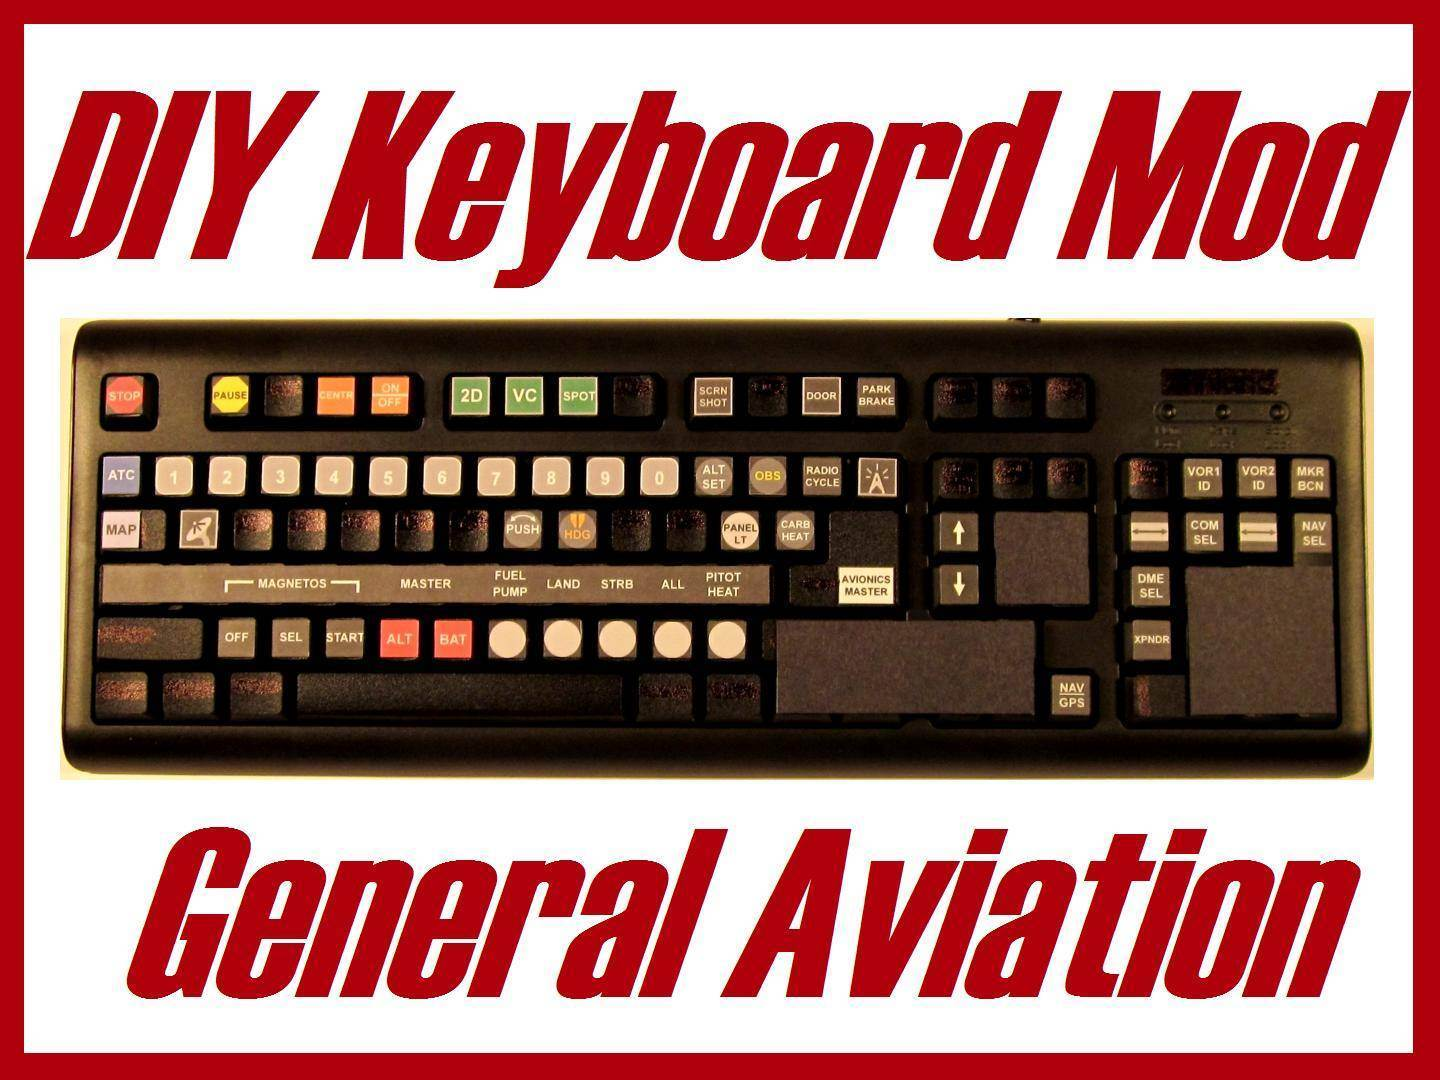 DIY Keyboard Mod: General Aviation